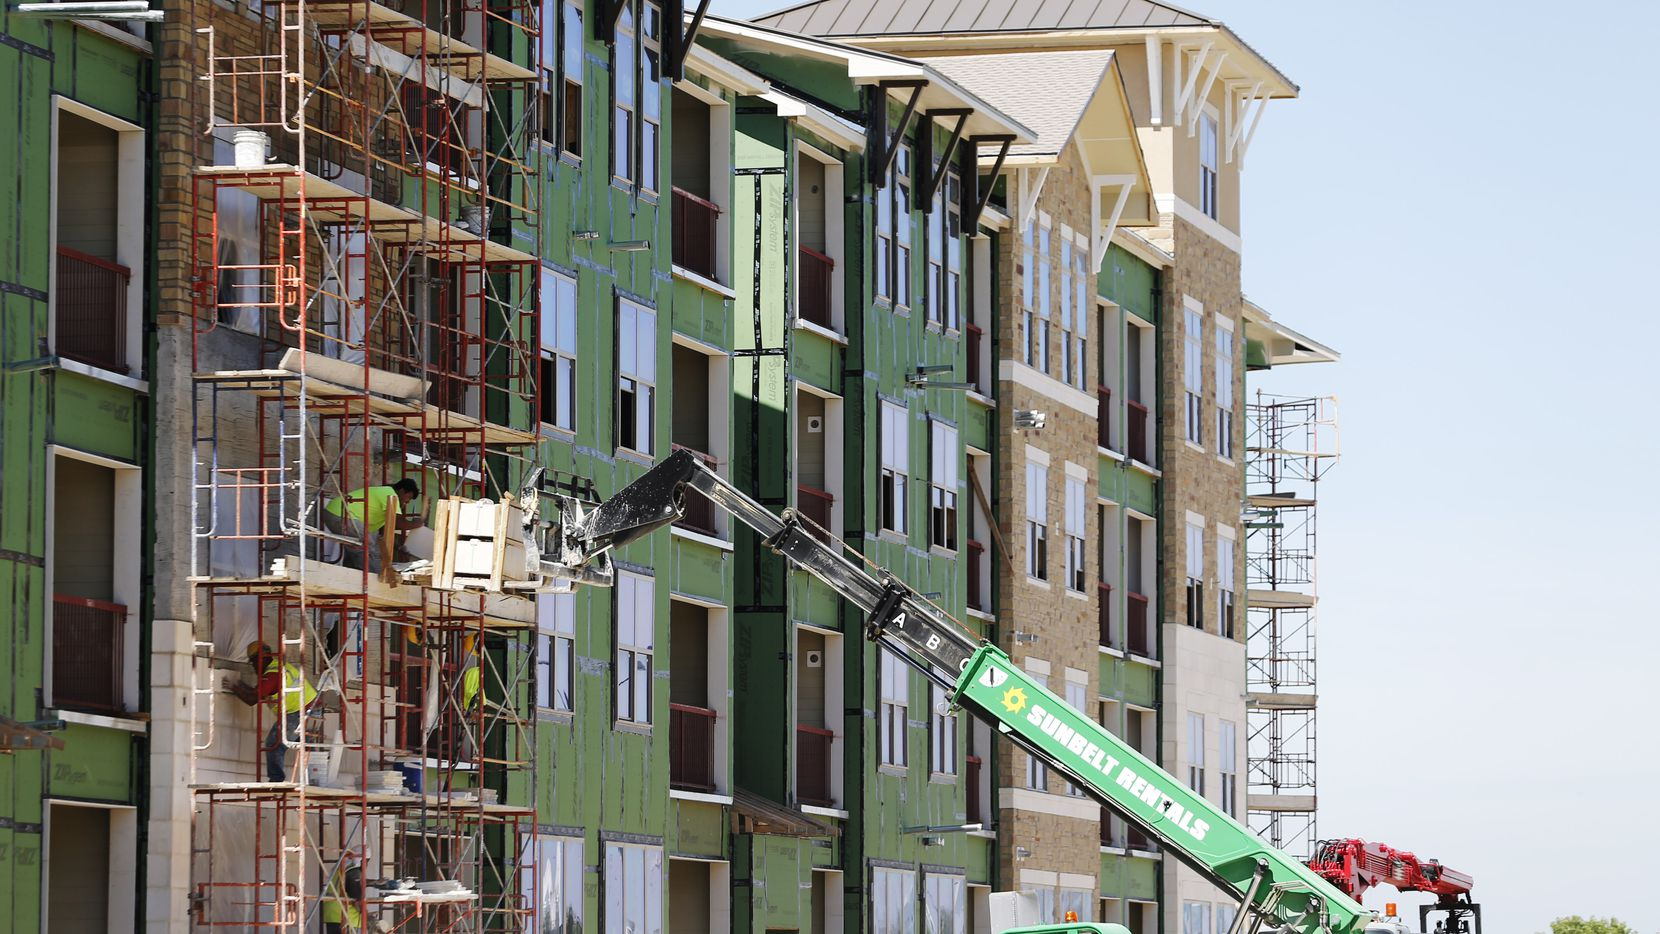 Widespread apartment construction in the Dallas-area held back rent increases in 2018.